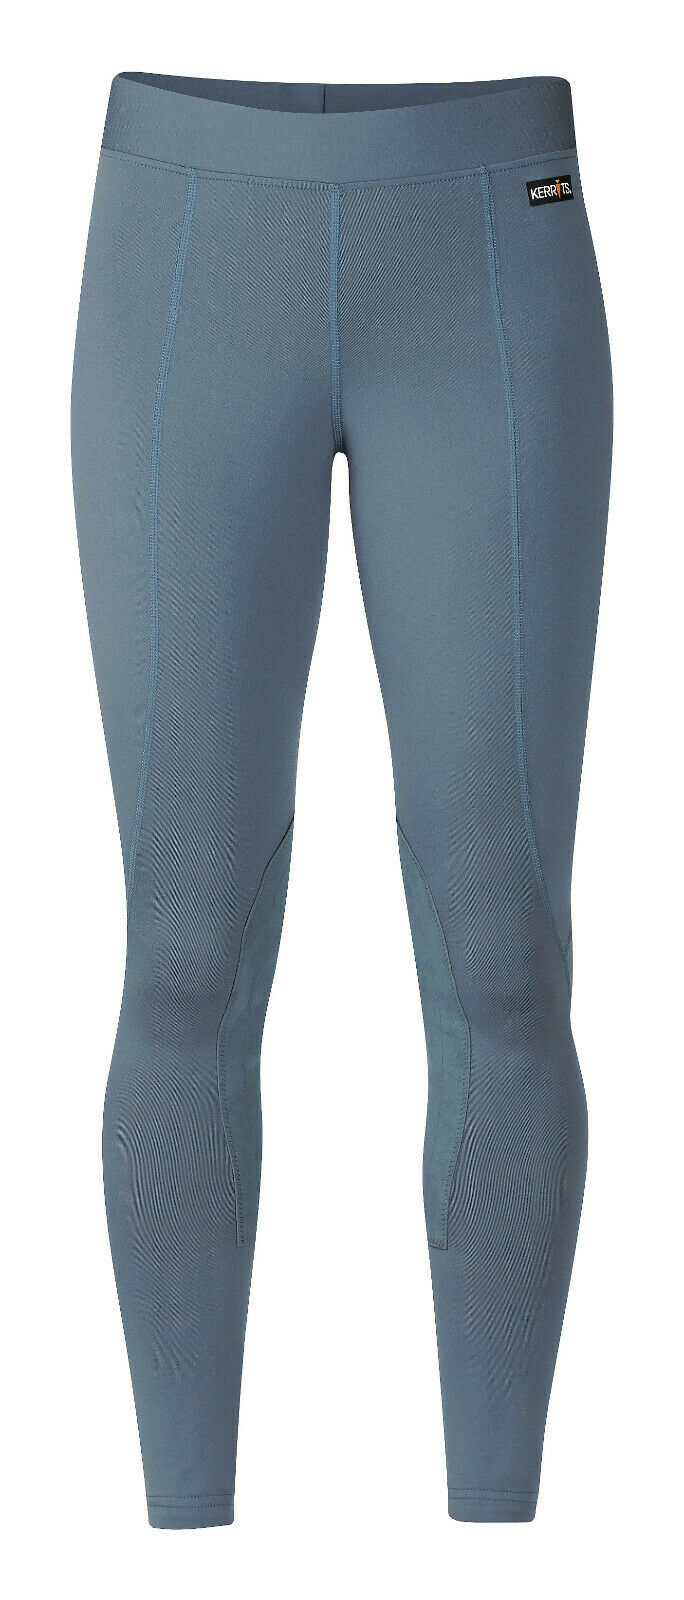 New Kerrits Ladies Performance Flow Rise Tight - Jade  - Various Sizes  shop clearance